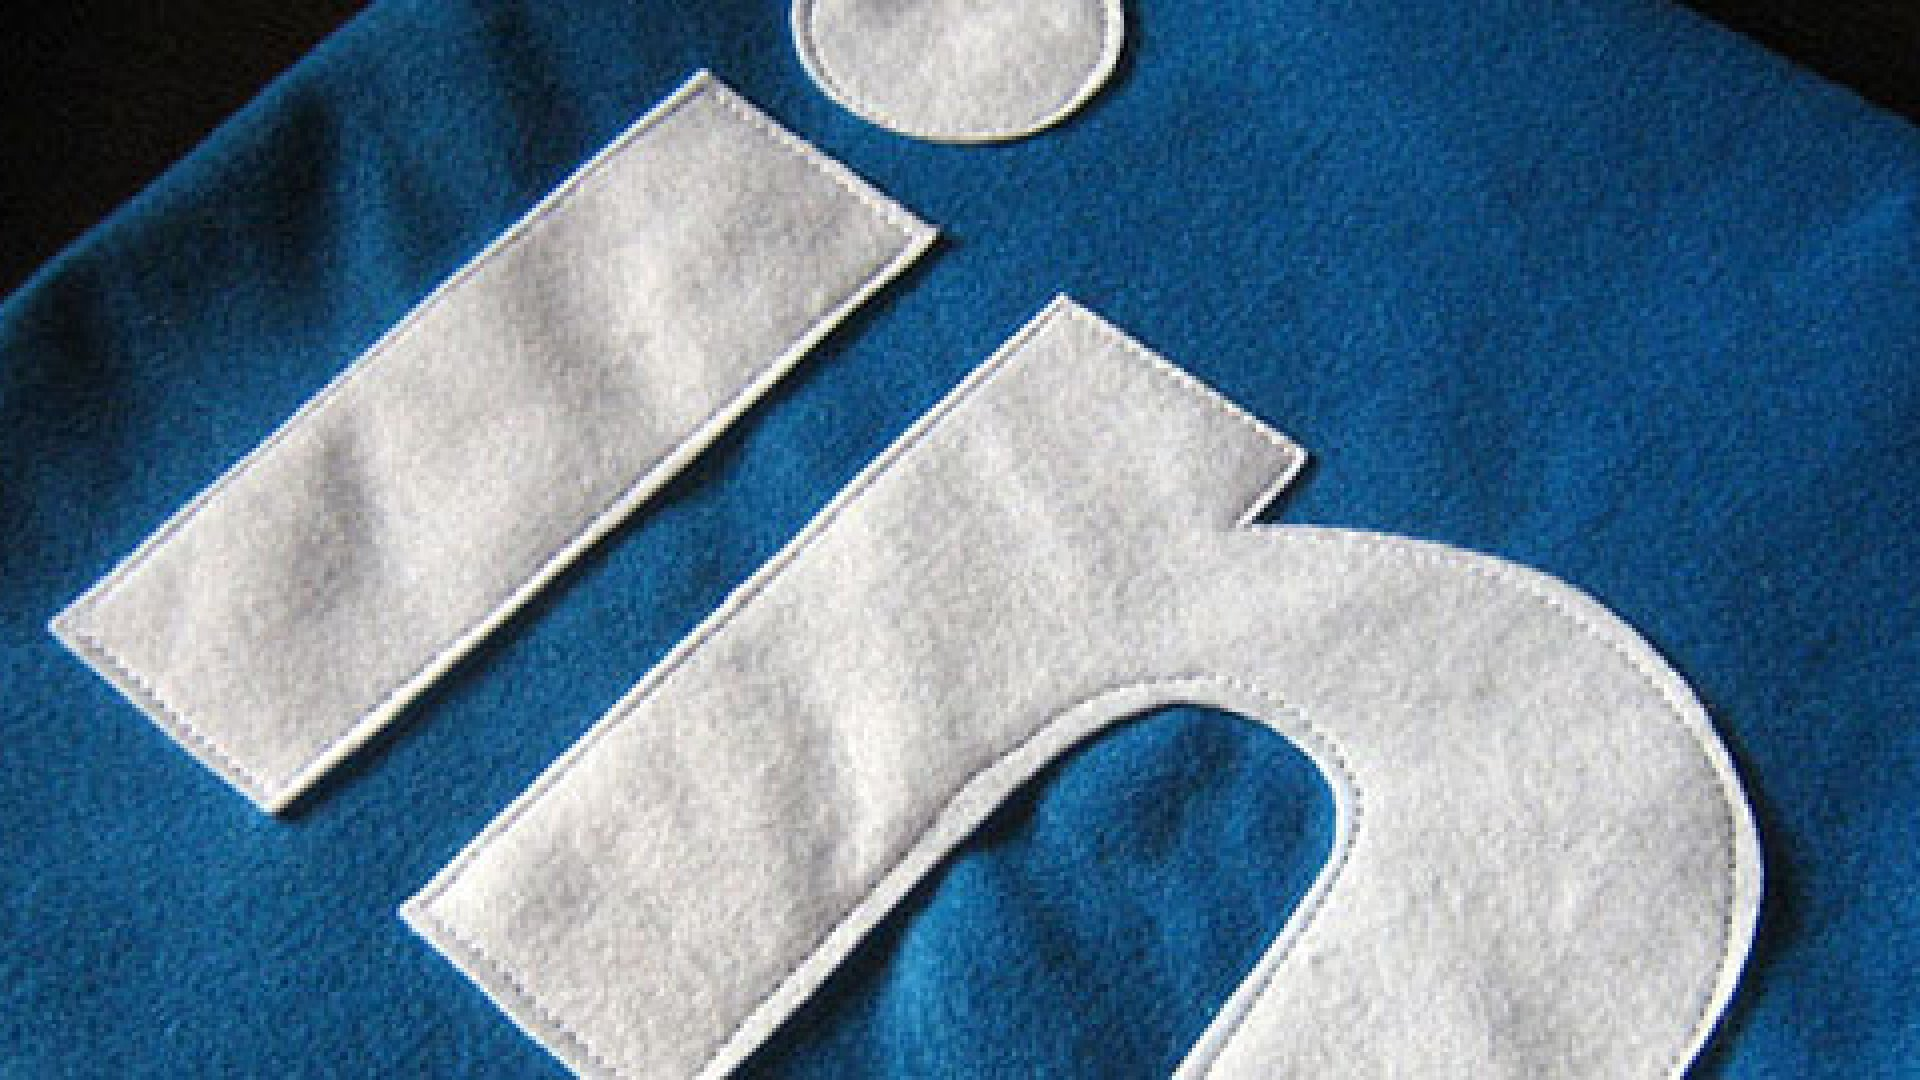 LinkedIn Will Outlive Facebook. Here's Why